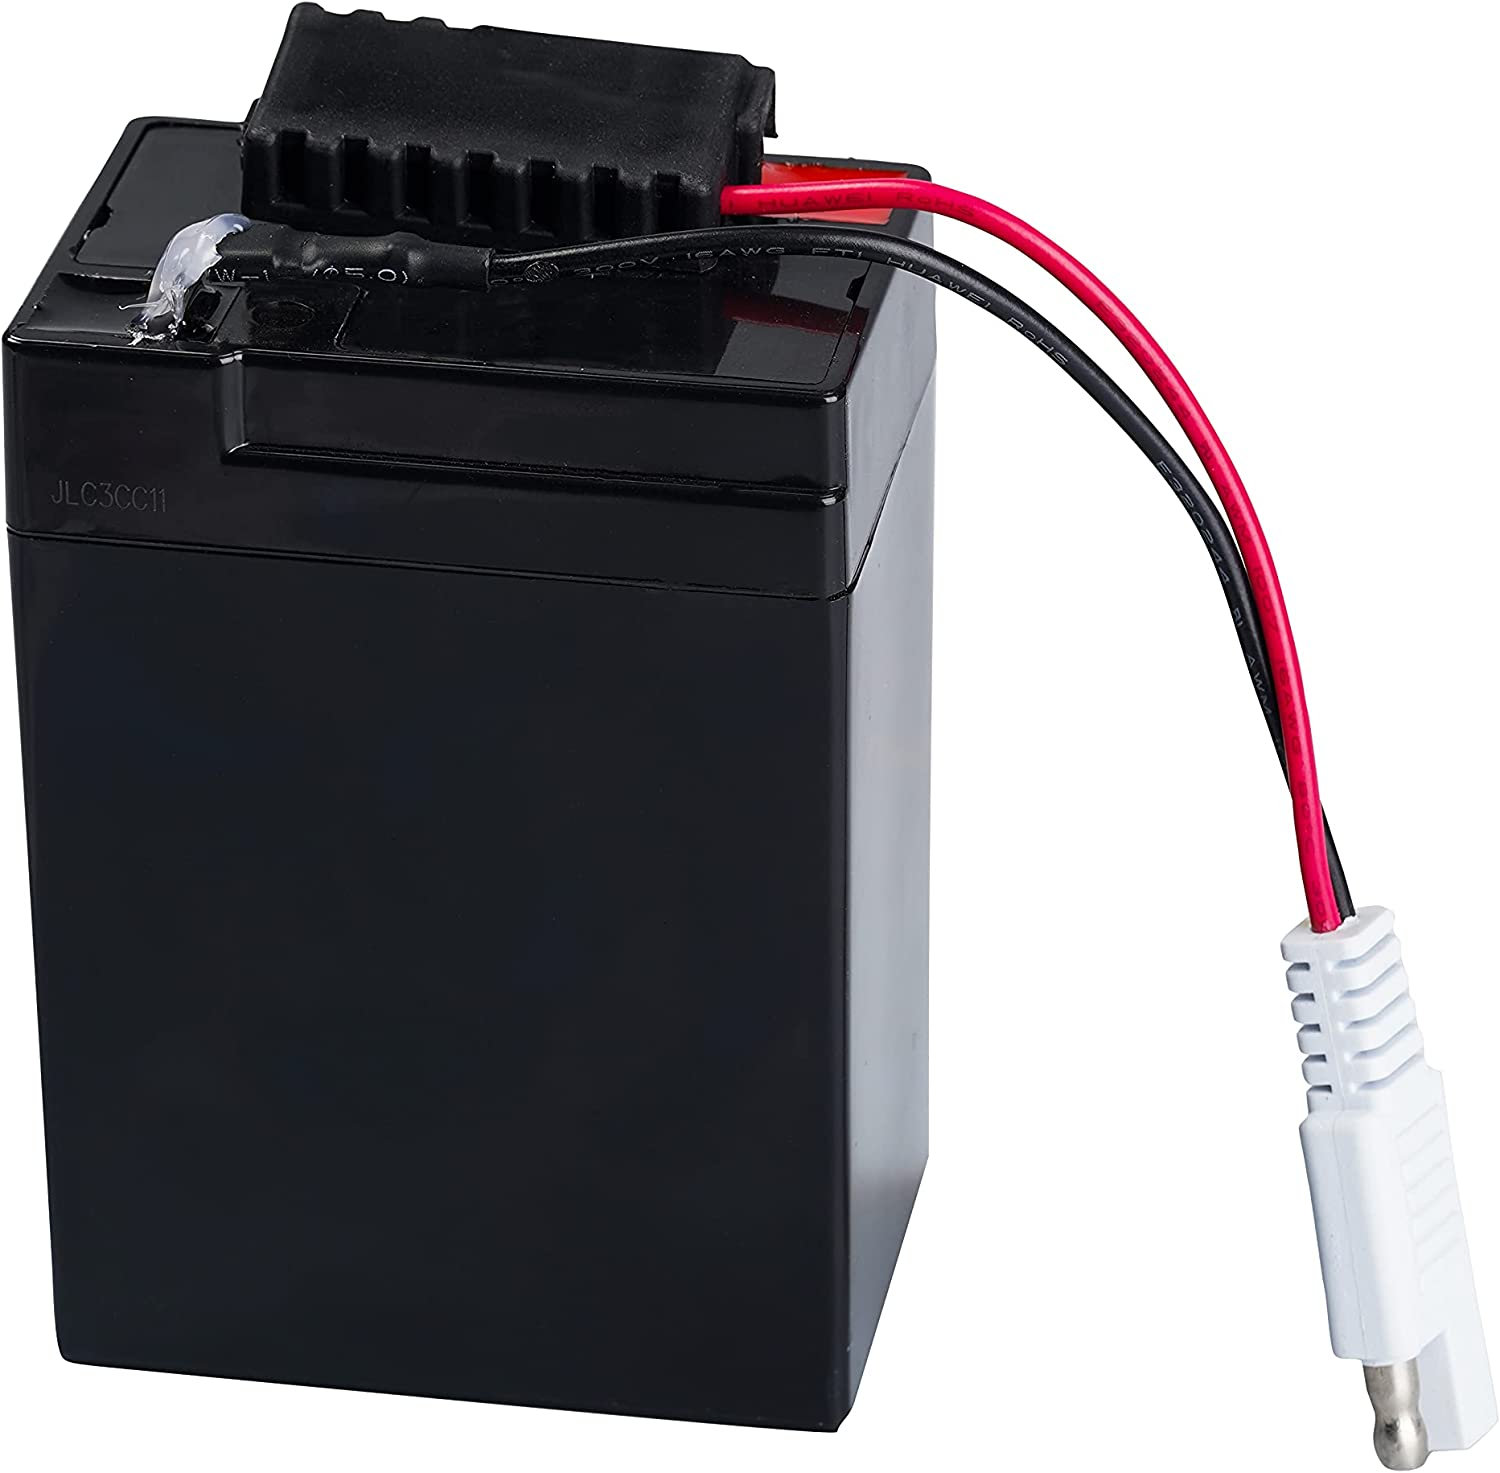 6V 4AH Raplacement Battery for OFFicial shop Super beauty product restock quality top Kids Car Ride Wheels Kid Power On